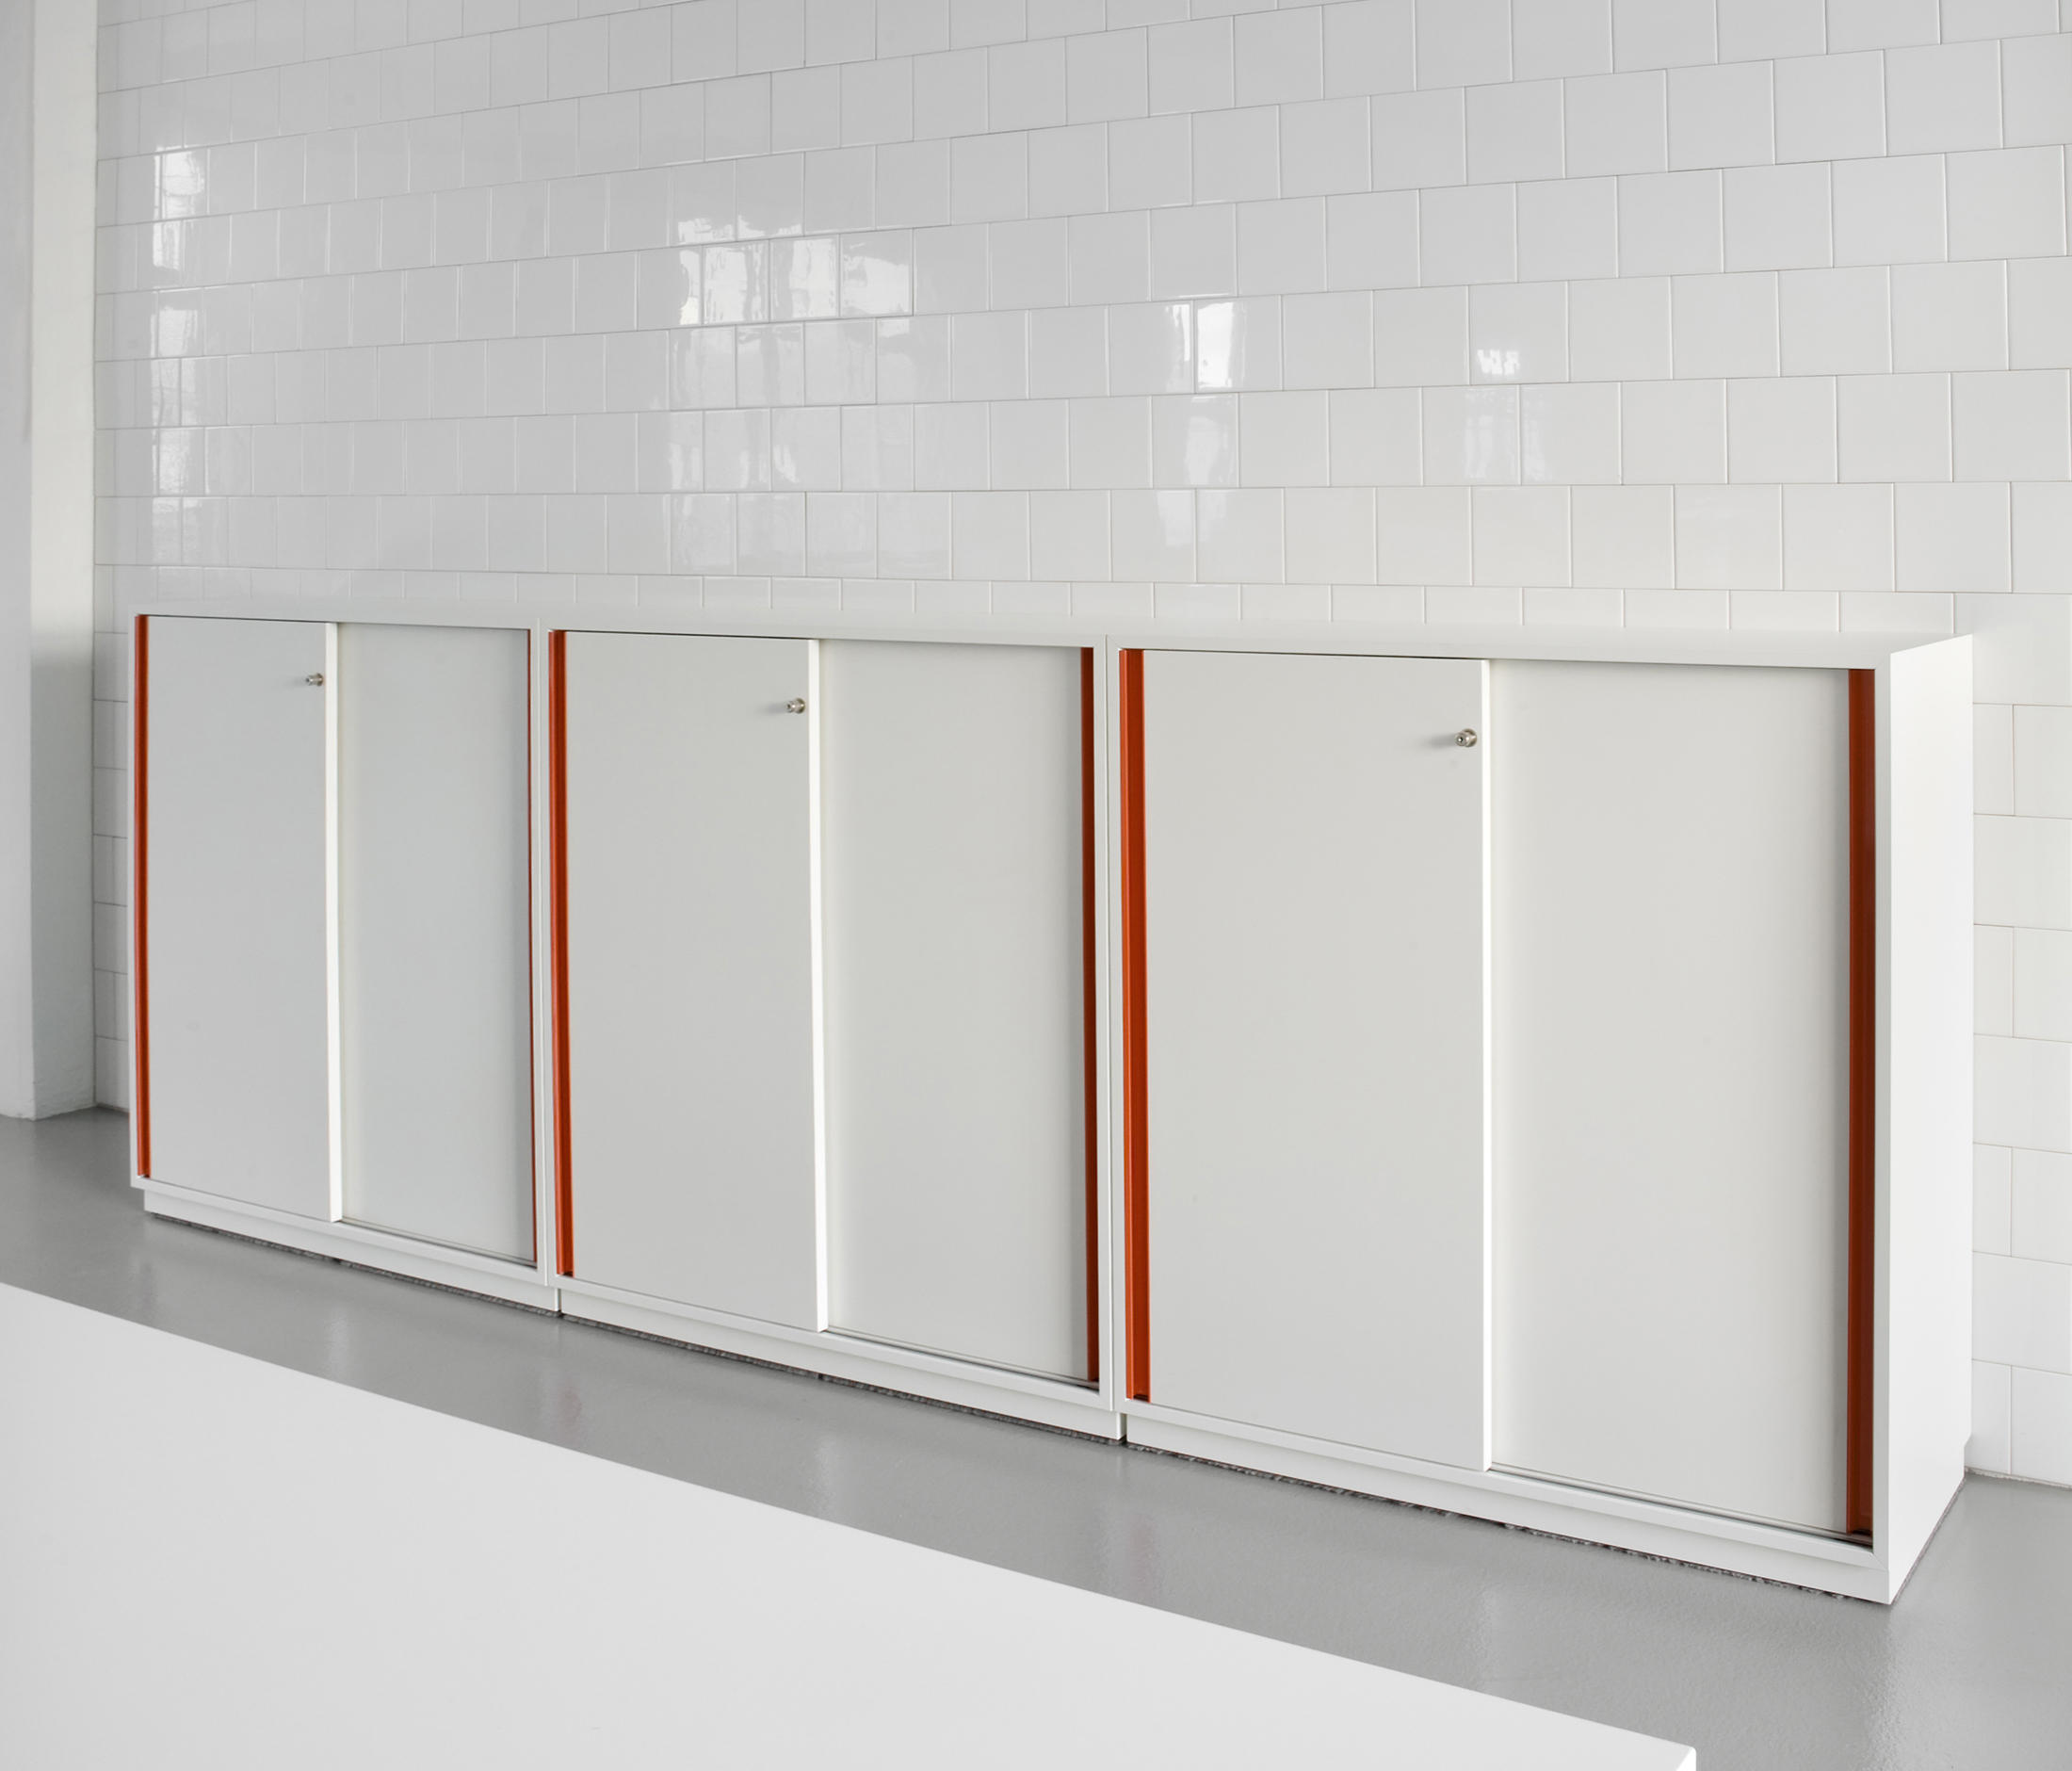 Slide Door Cabinet & Garage Storage Cabinets With Sliding